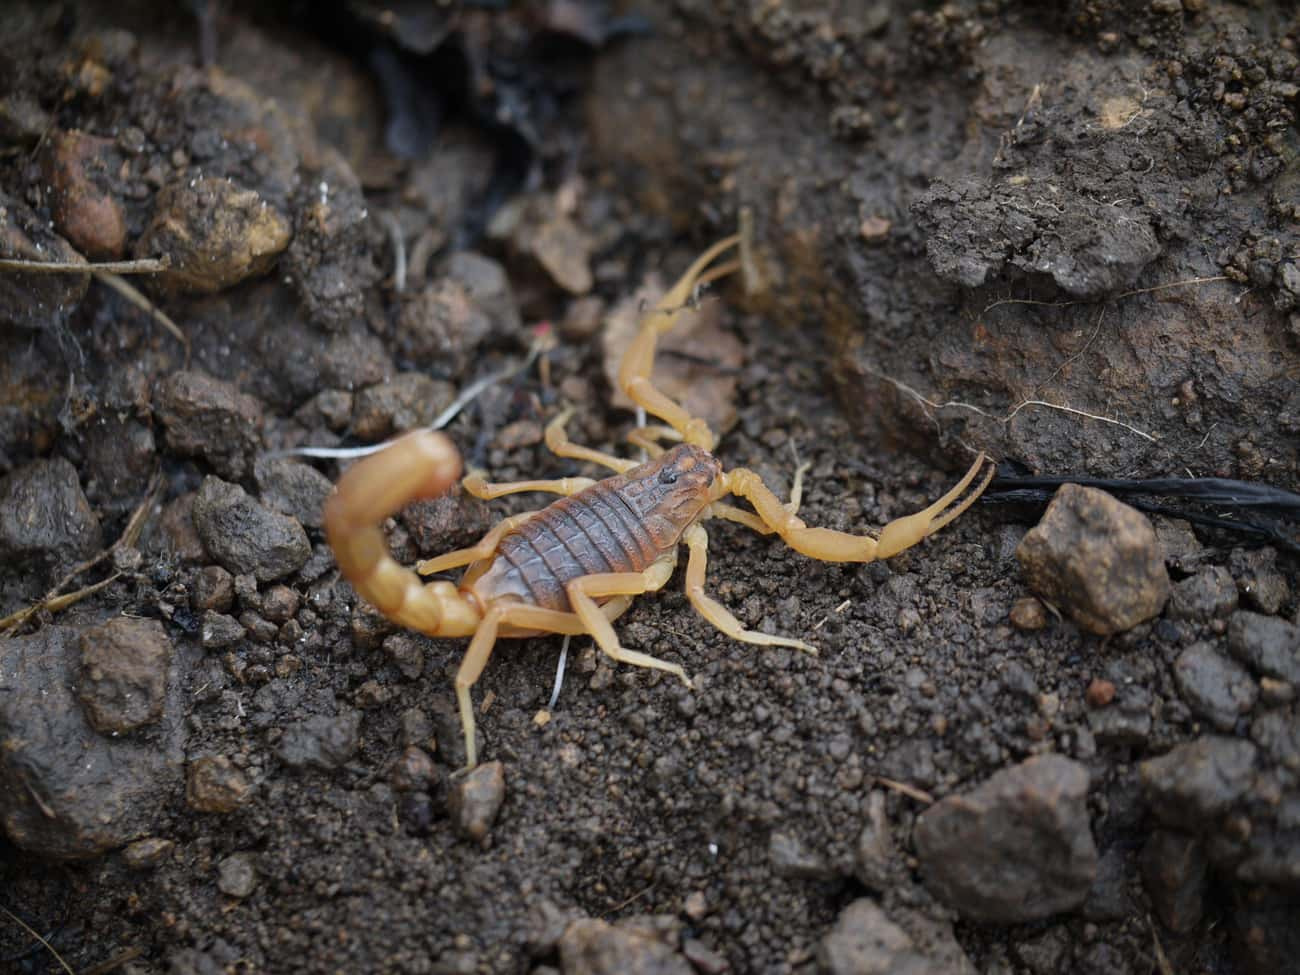 The Indian Red Scorpion Is One is listed (or ranked) 1 on the list 11 Nightmare Creatures You Never Want To Encounter In India